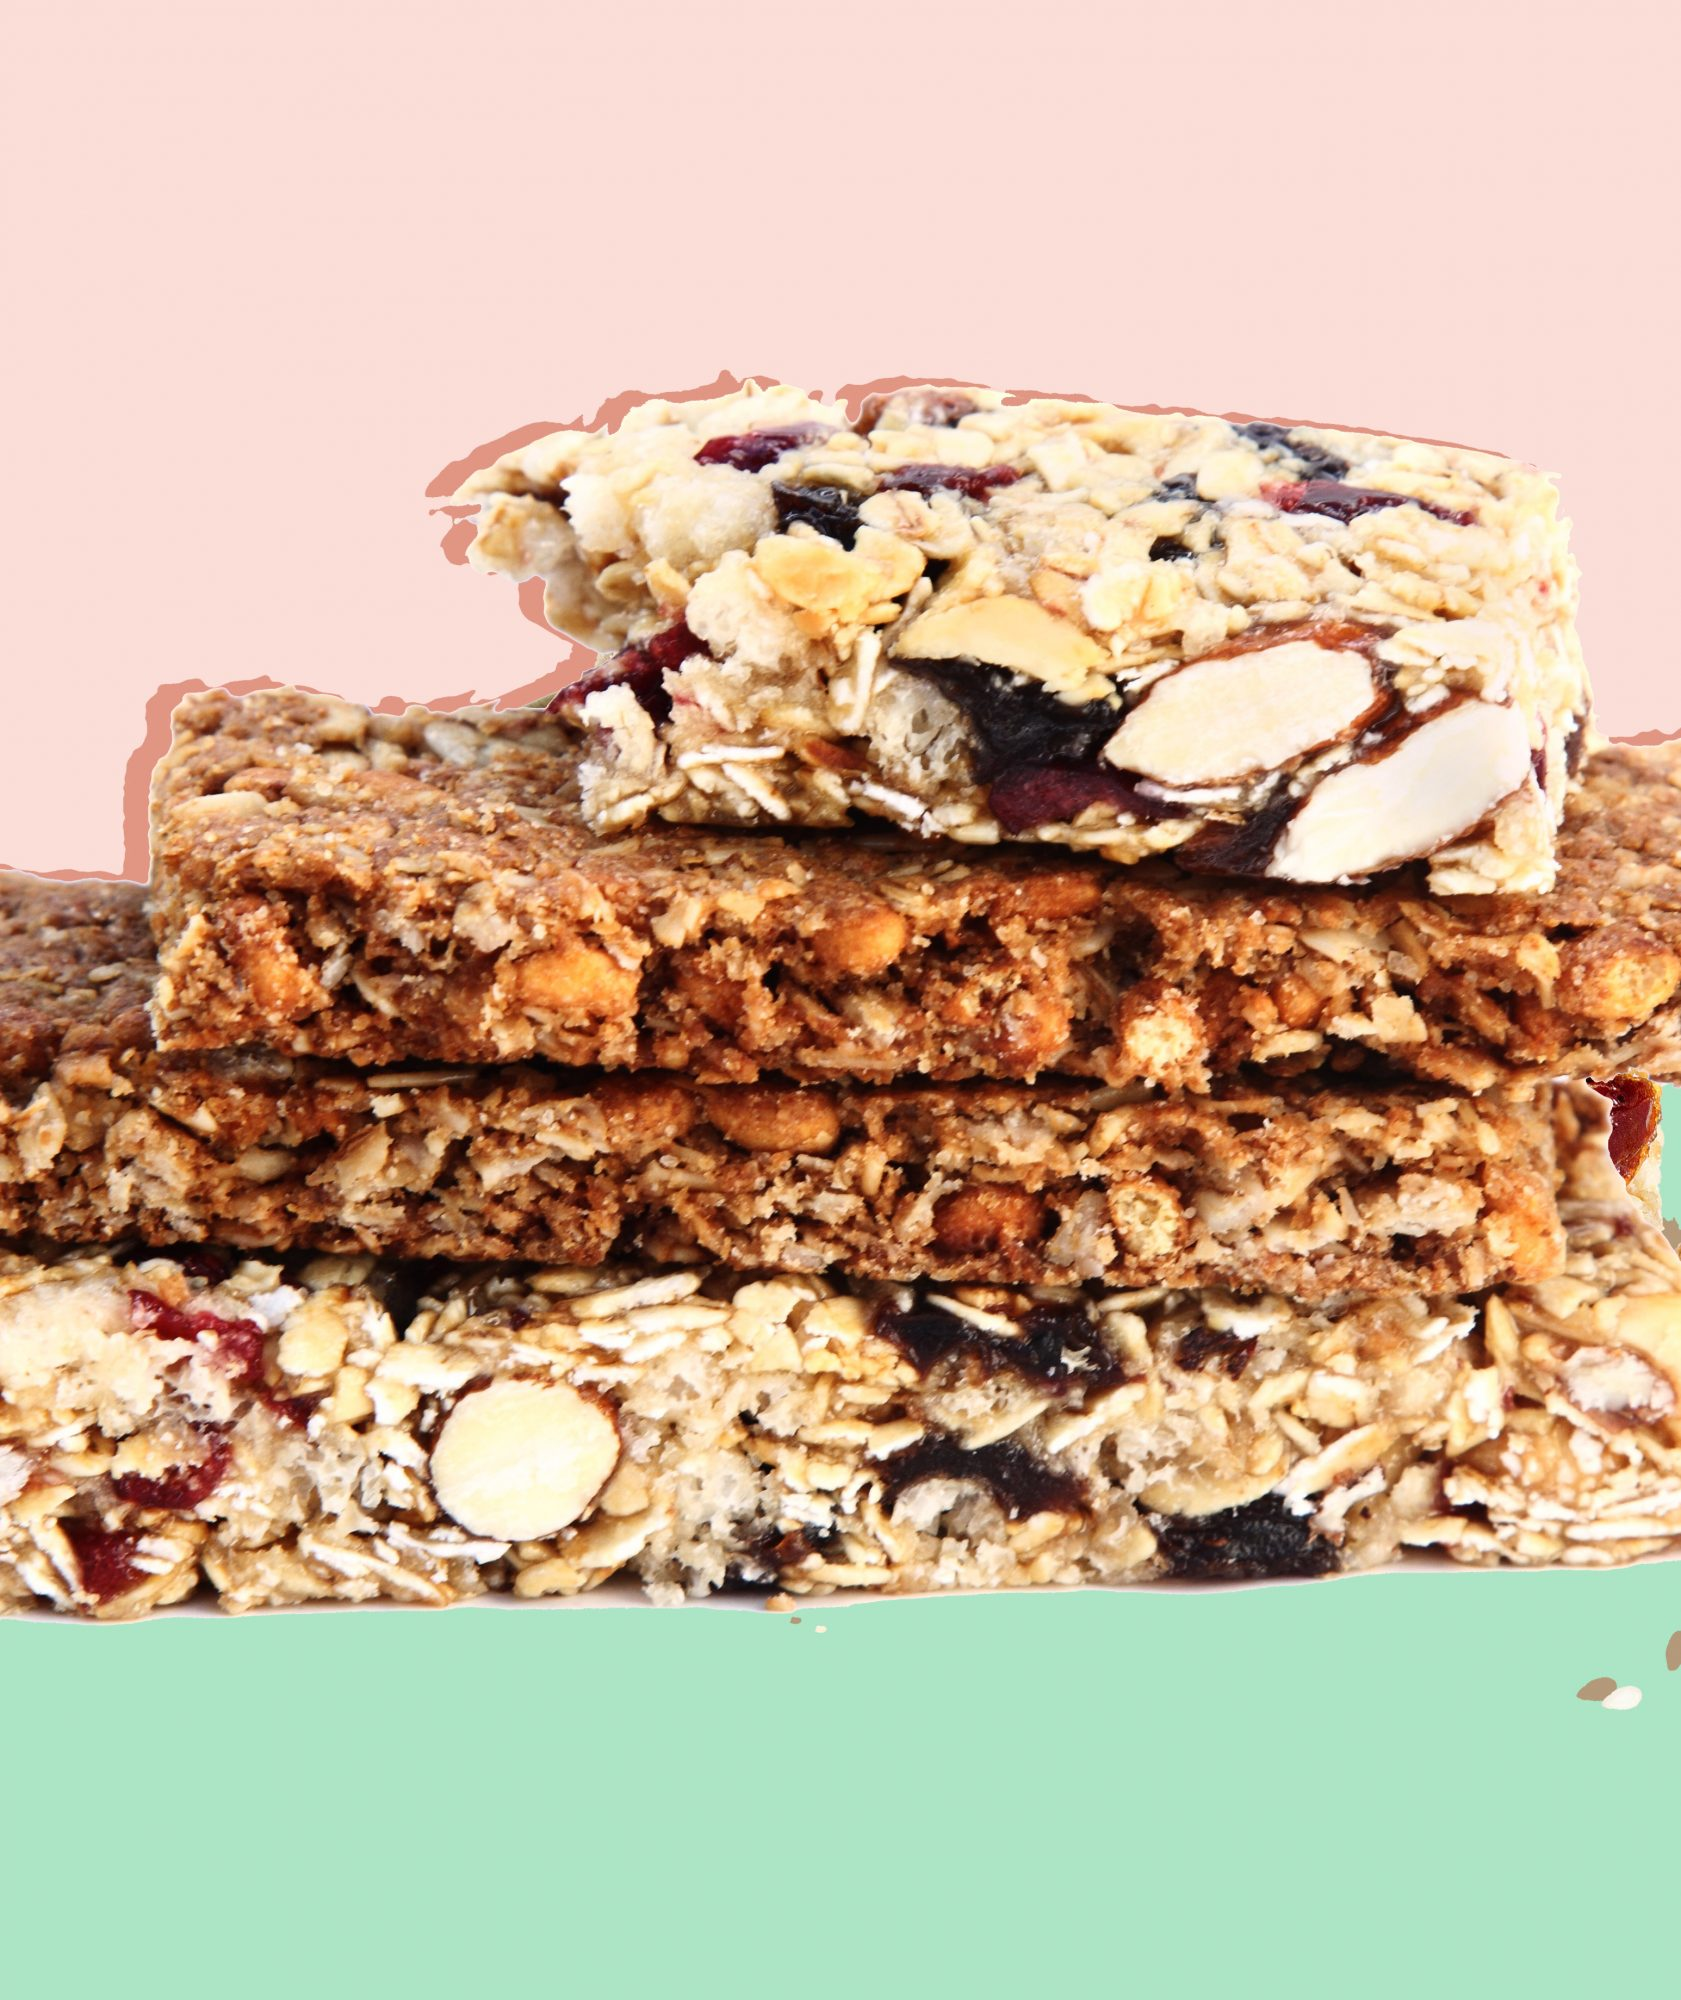 We Tried All of the Snack Bars From Trader Joe's—Here AreOur Top 5